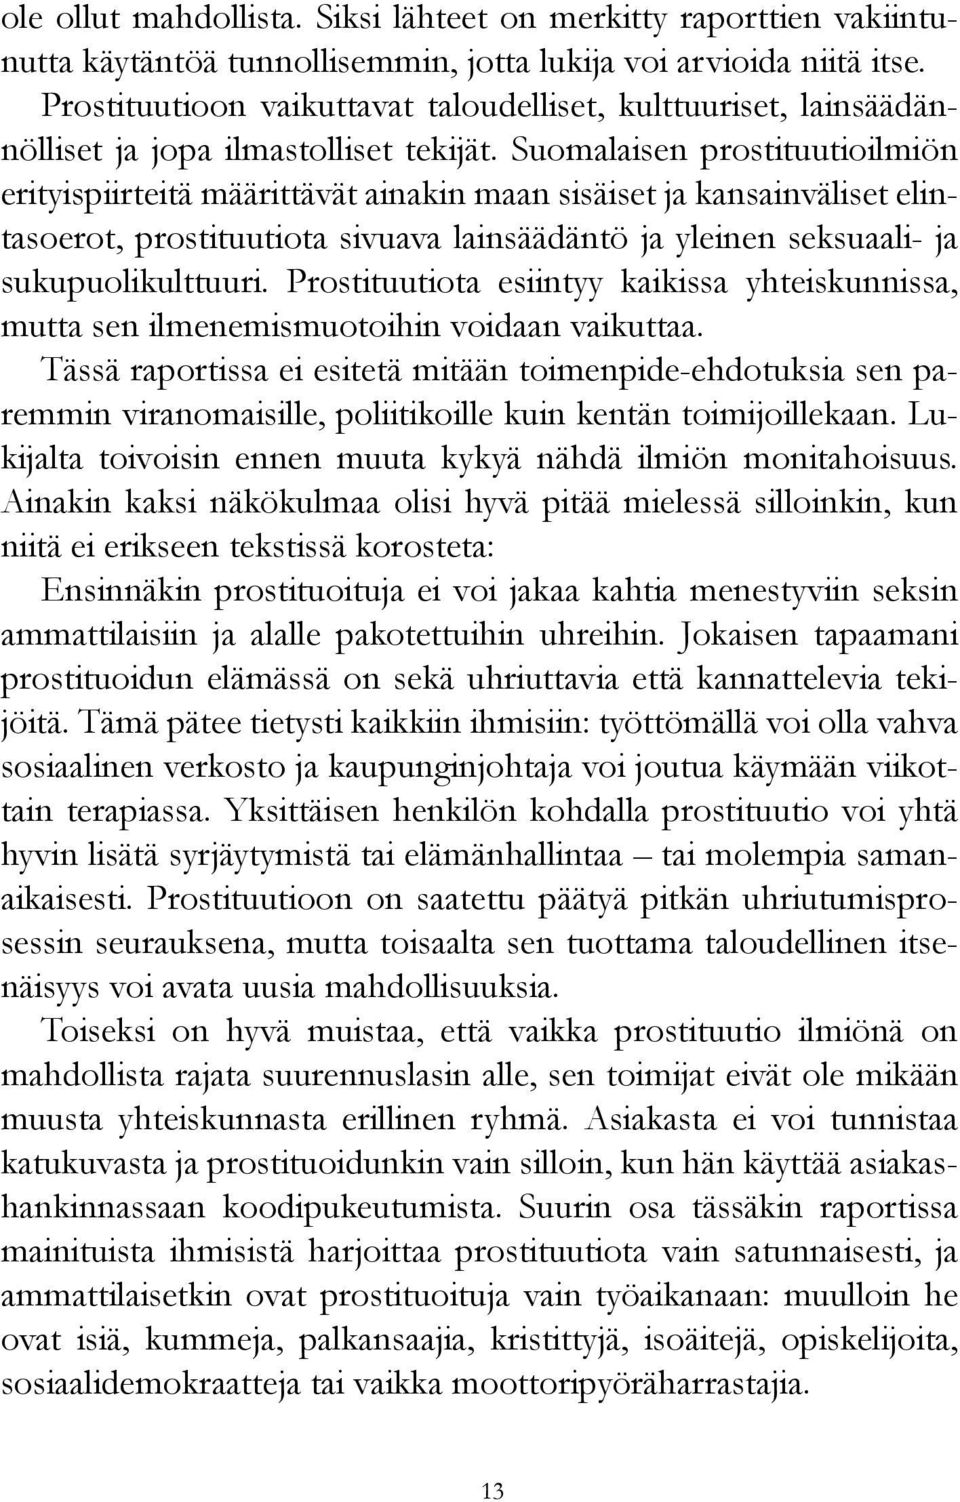 male sex prostituutio suomessa laki